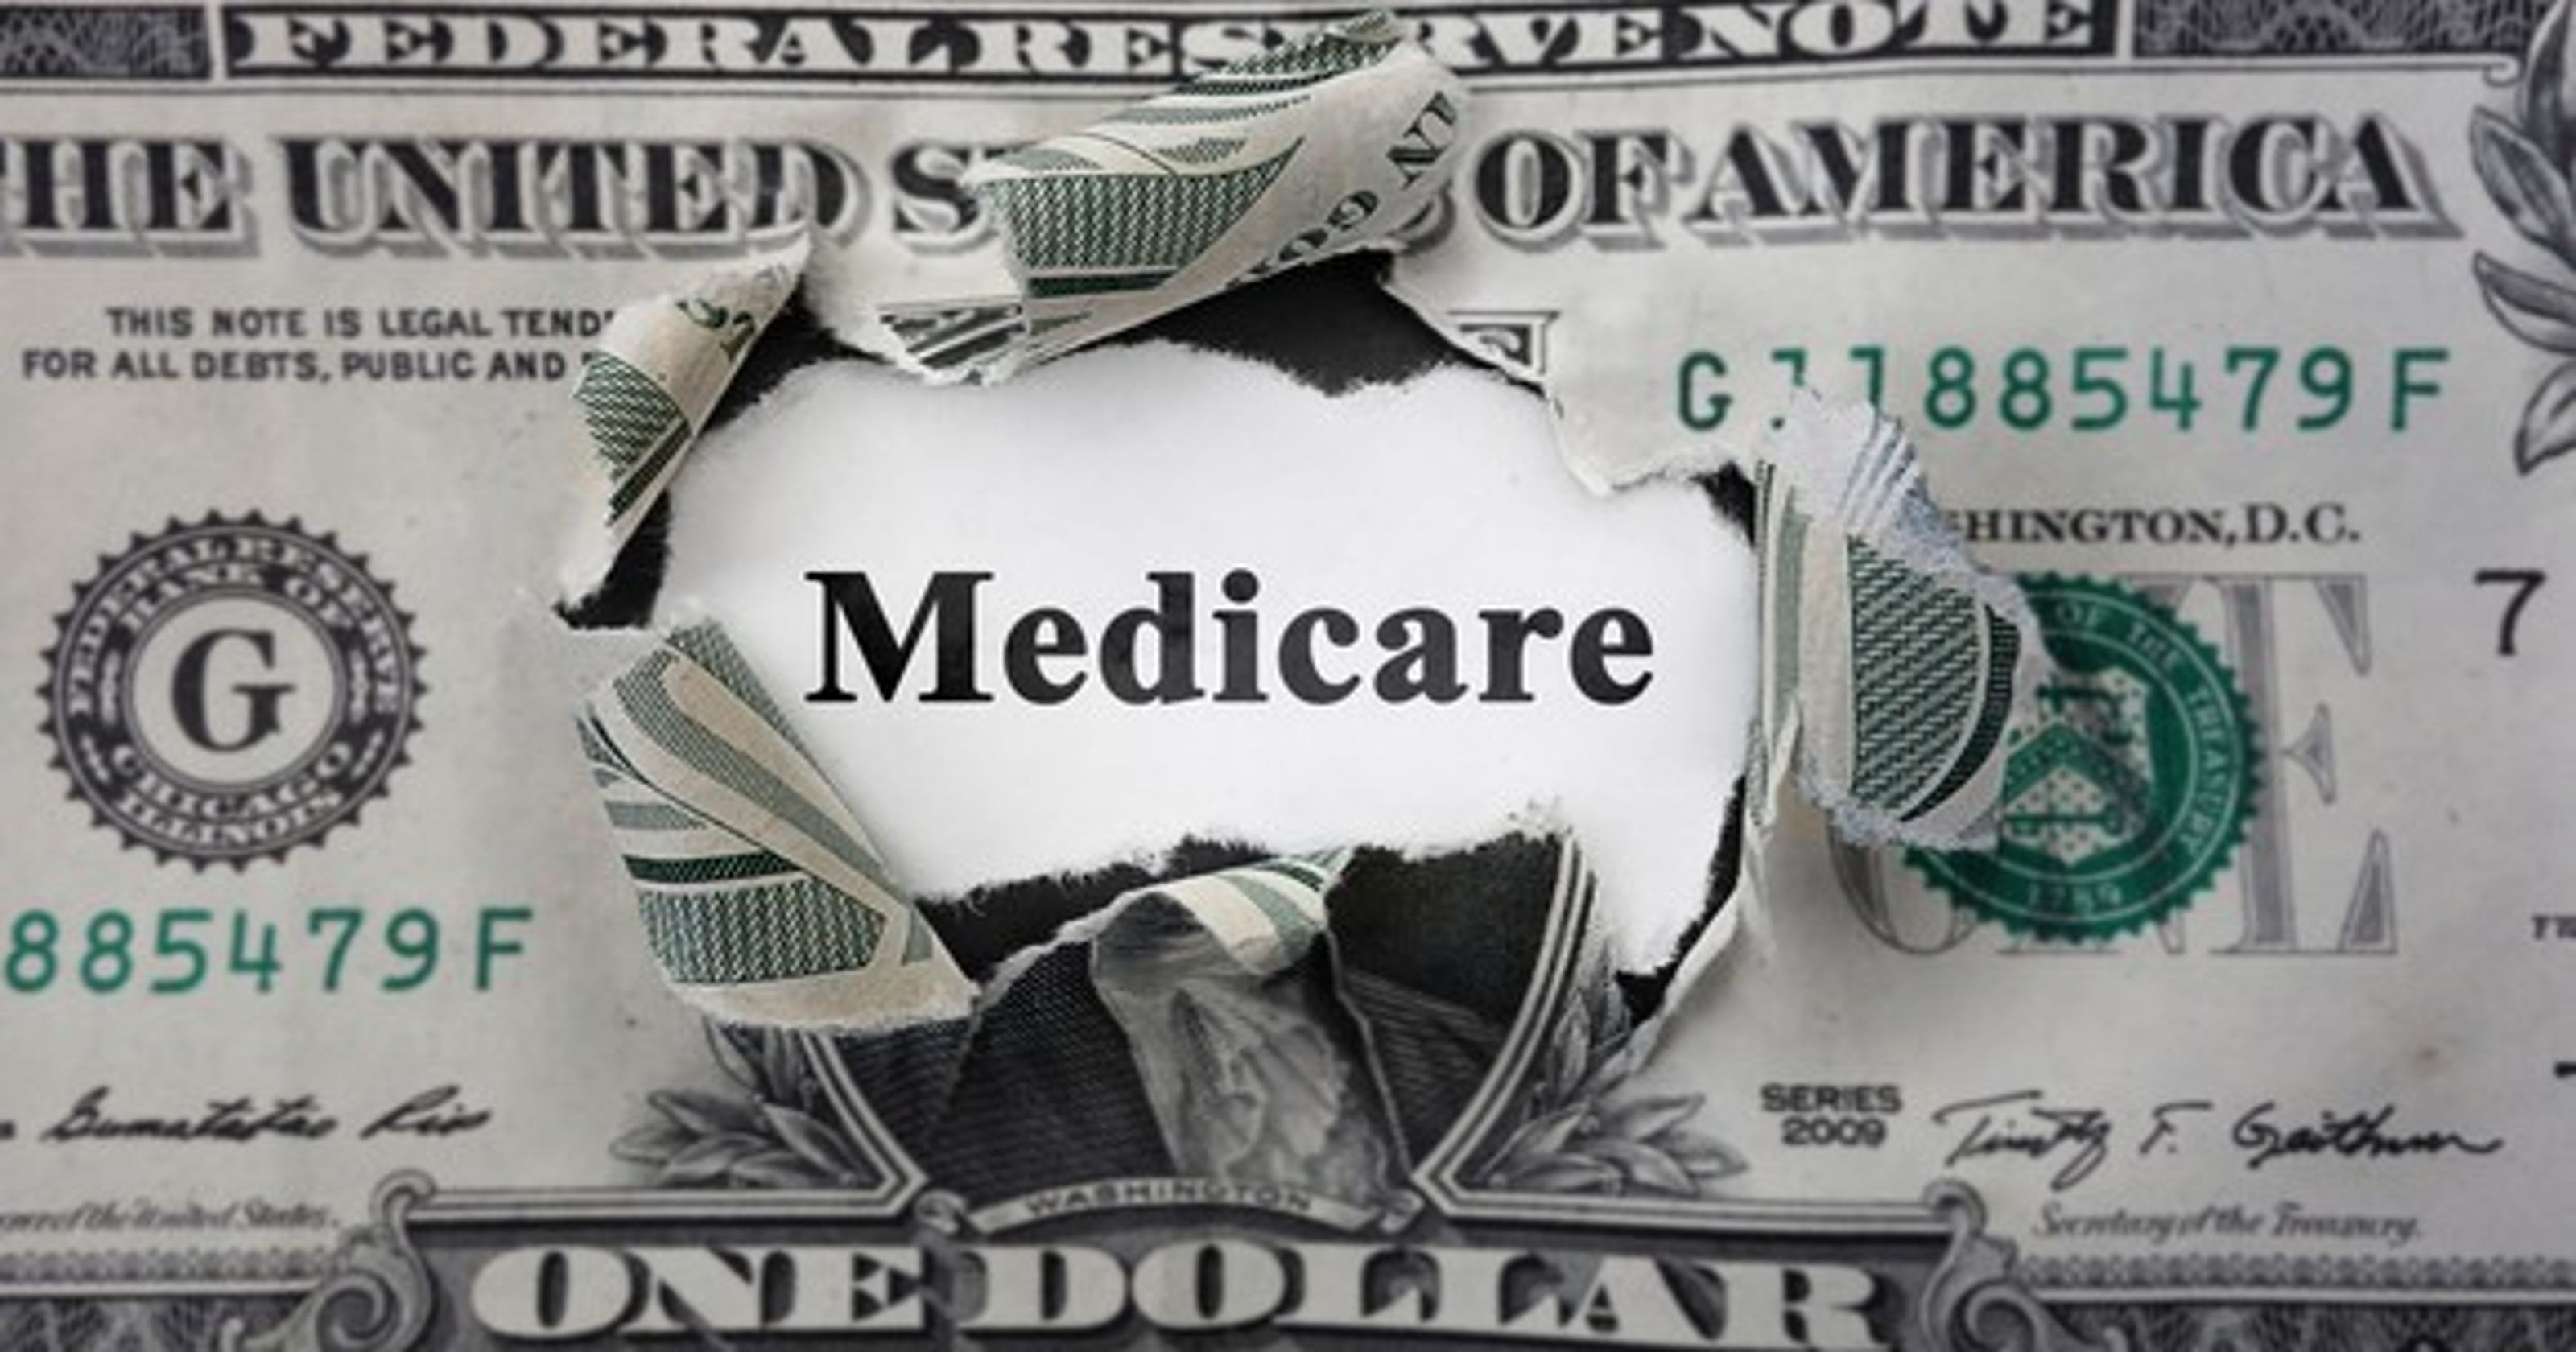 Social Security loophole: Medicare could cost you more than